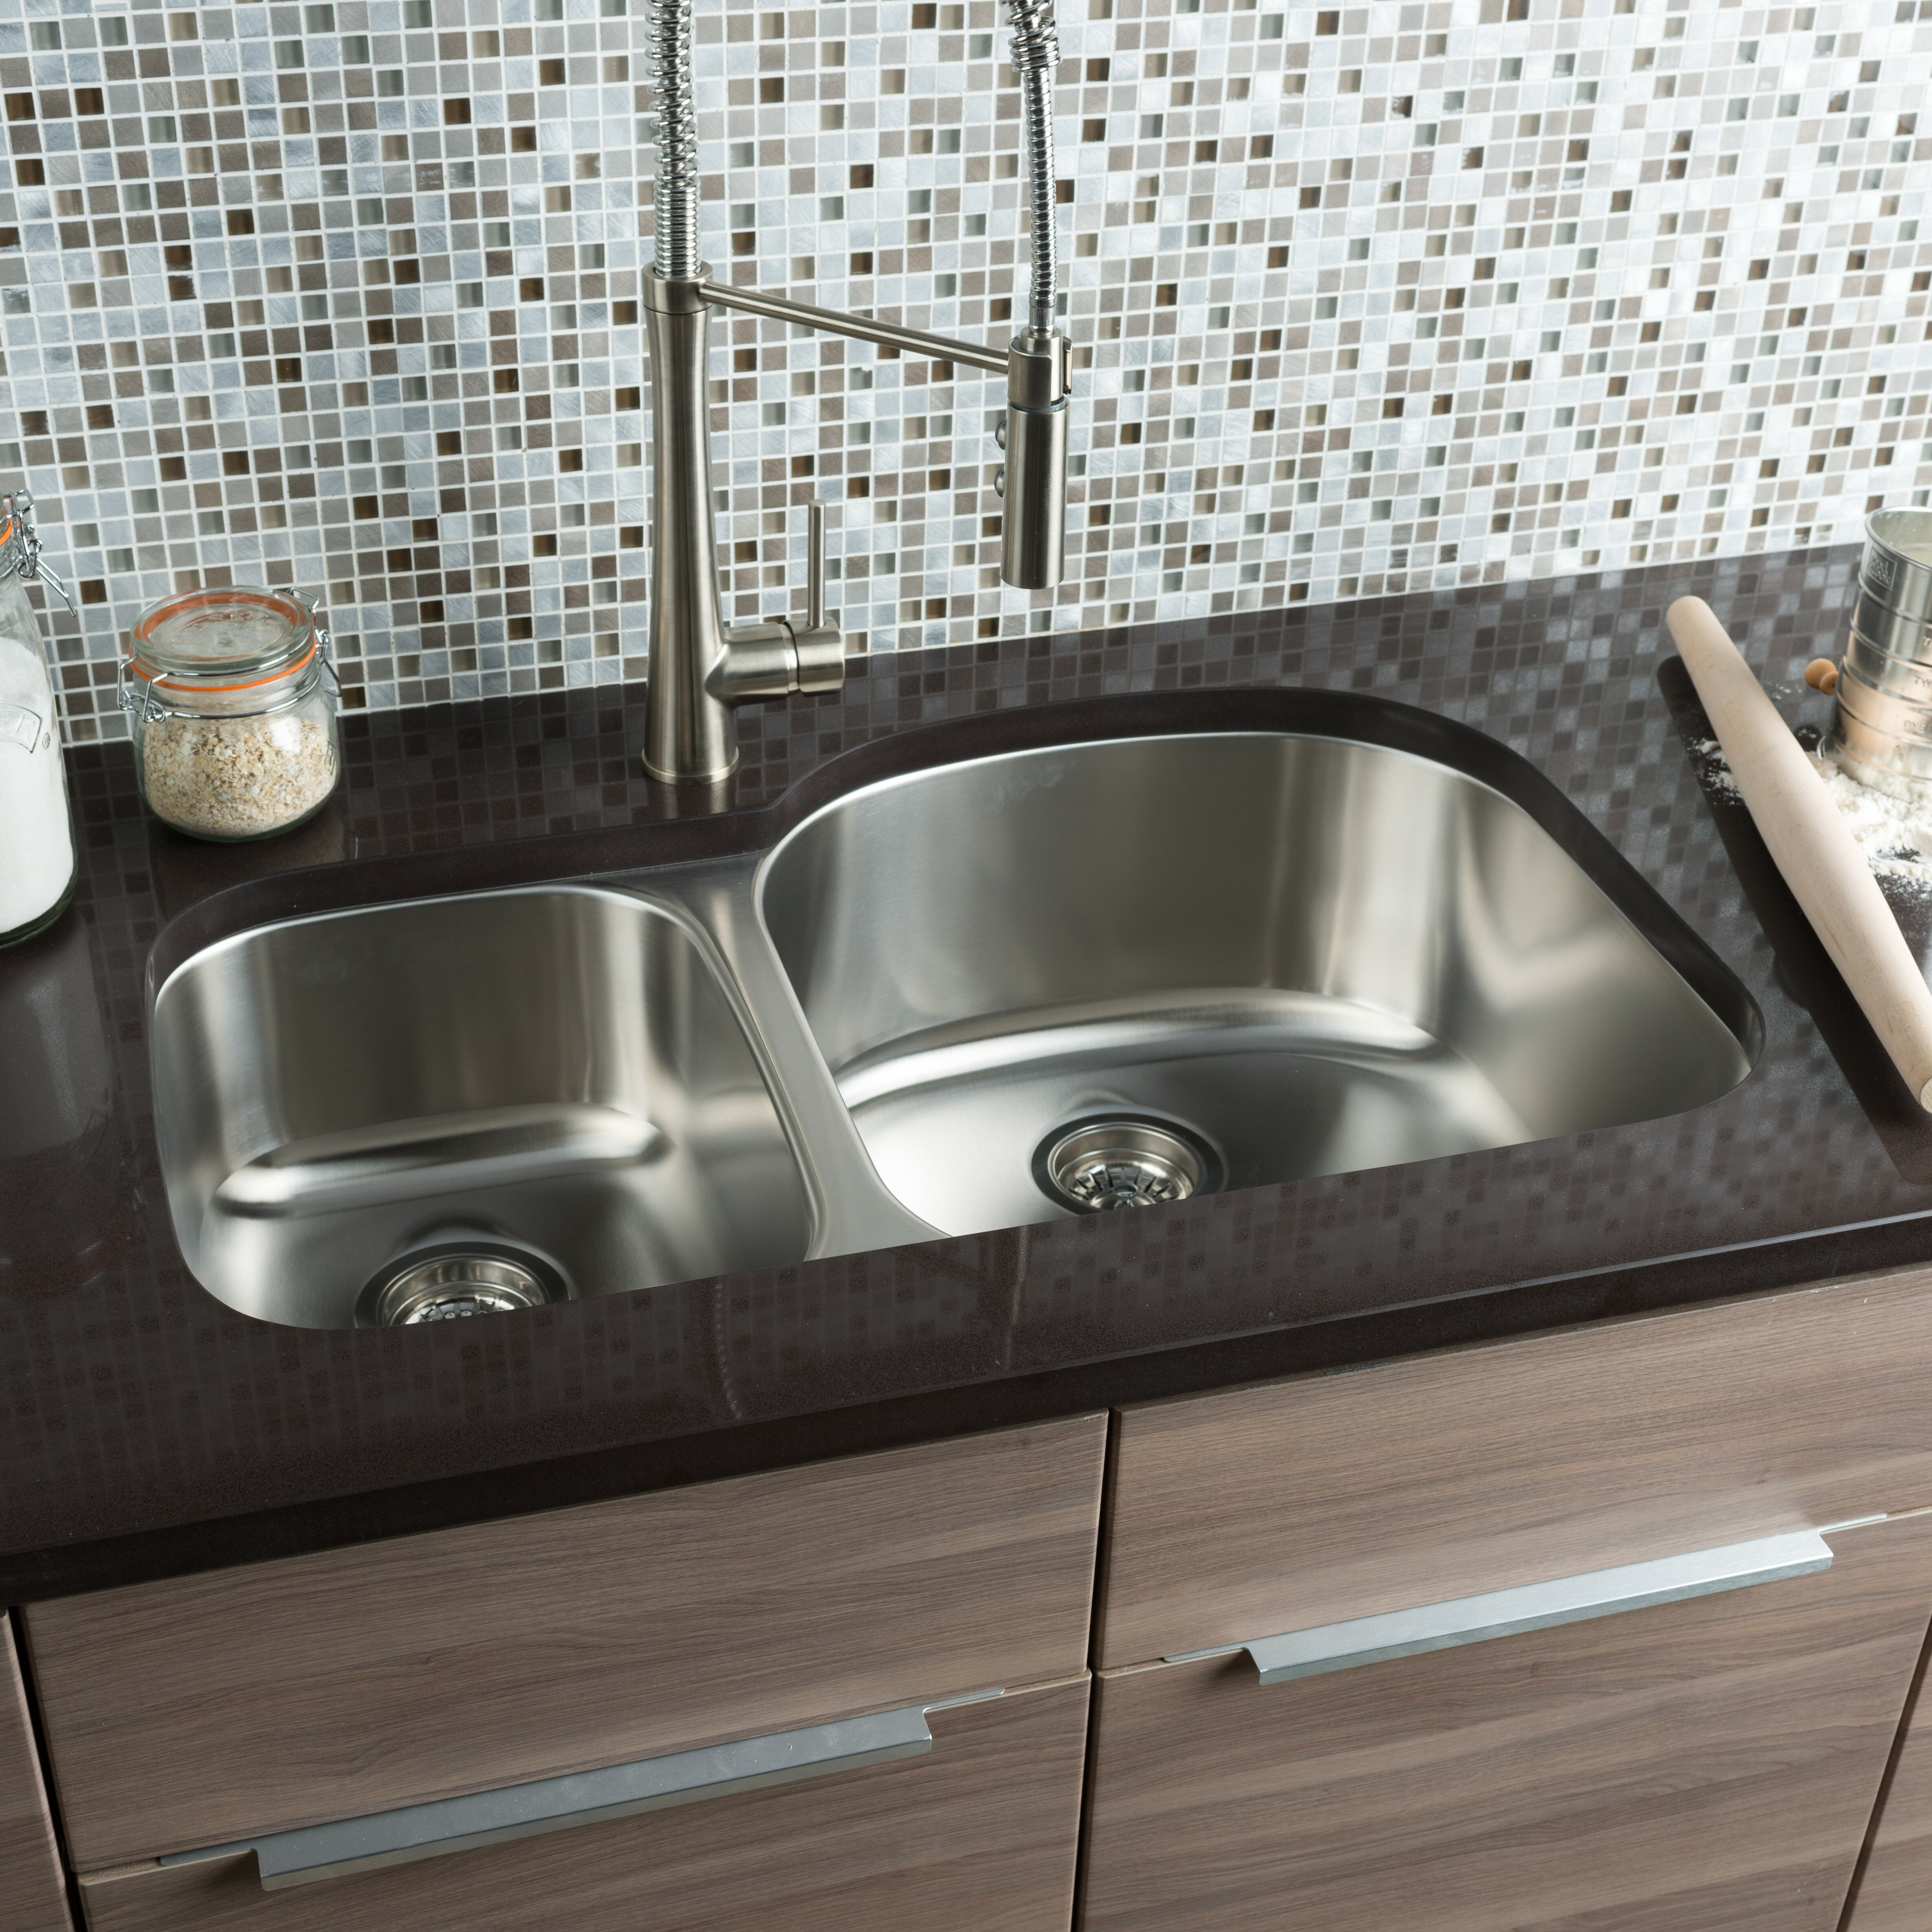 Kitchen Sinks l c O~Hahn hahn kitchen sinks Classic Chef 32 38 20 5 Double Bowl Undermount Kitchen Sink